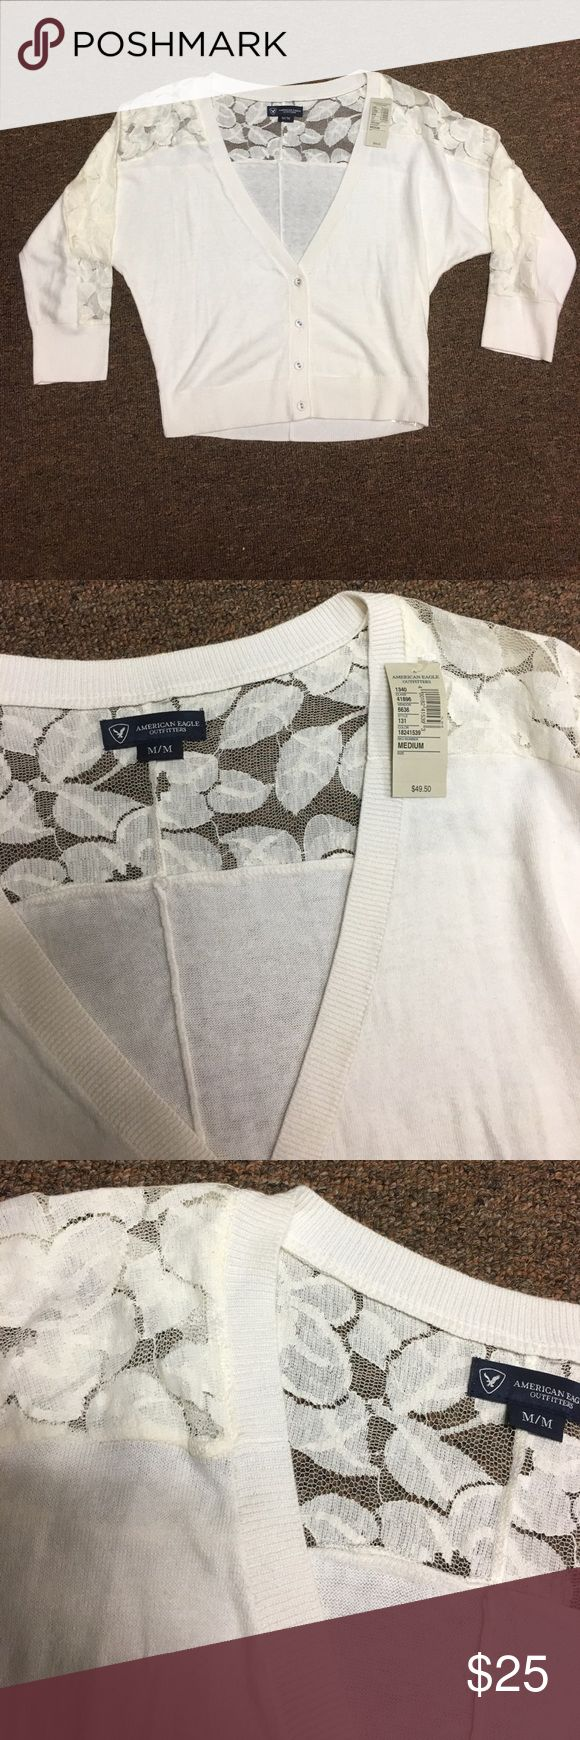 American Eagle Crop Top Cardigan BRAND new with tags!! American Eagle Ivory (cream) crop Top Cardigan!! The top half of the 3/4 sleeves are a nice Lace (see photo) very very cute for casual or going out! American Eagle Outfitters Sweaters Cardigans